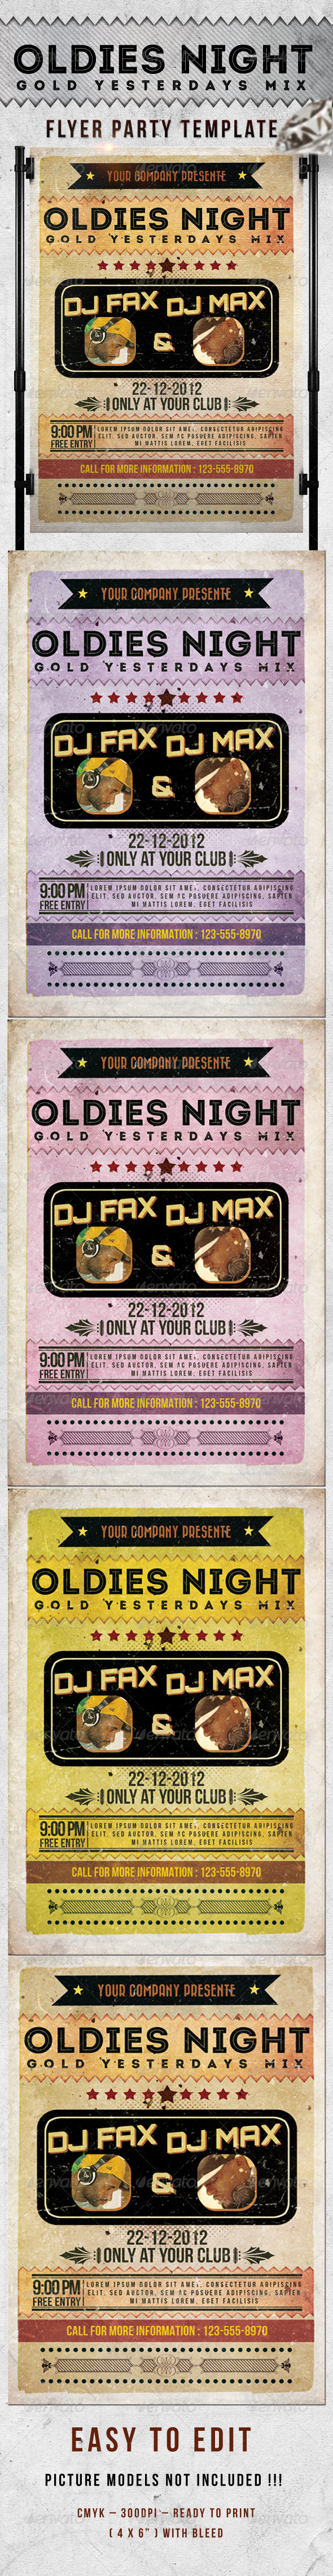 Oldies Night Party Flyer Template - Clubs & Parties Events